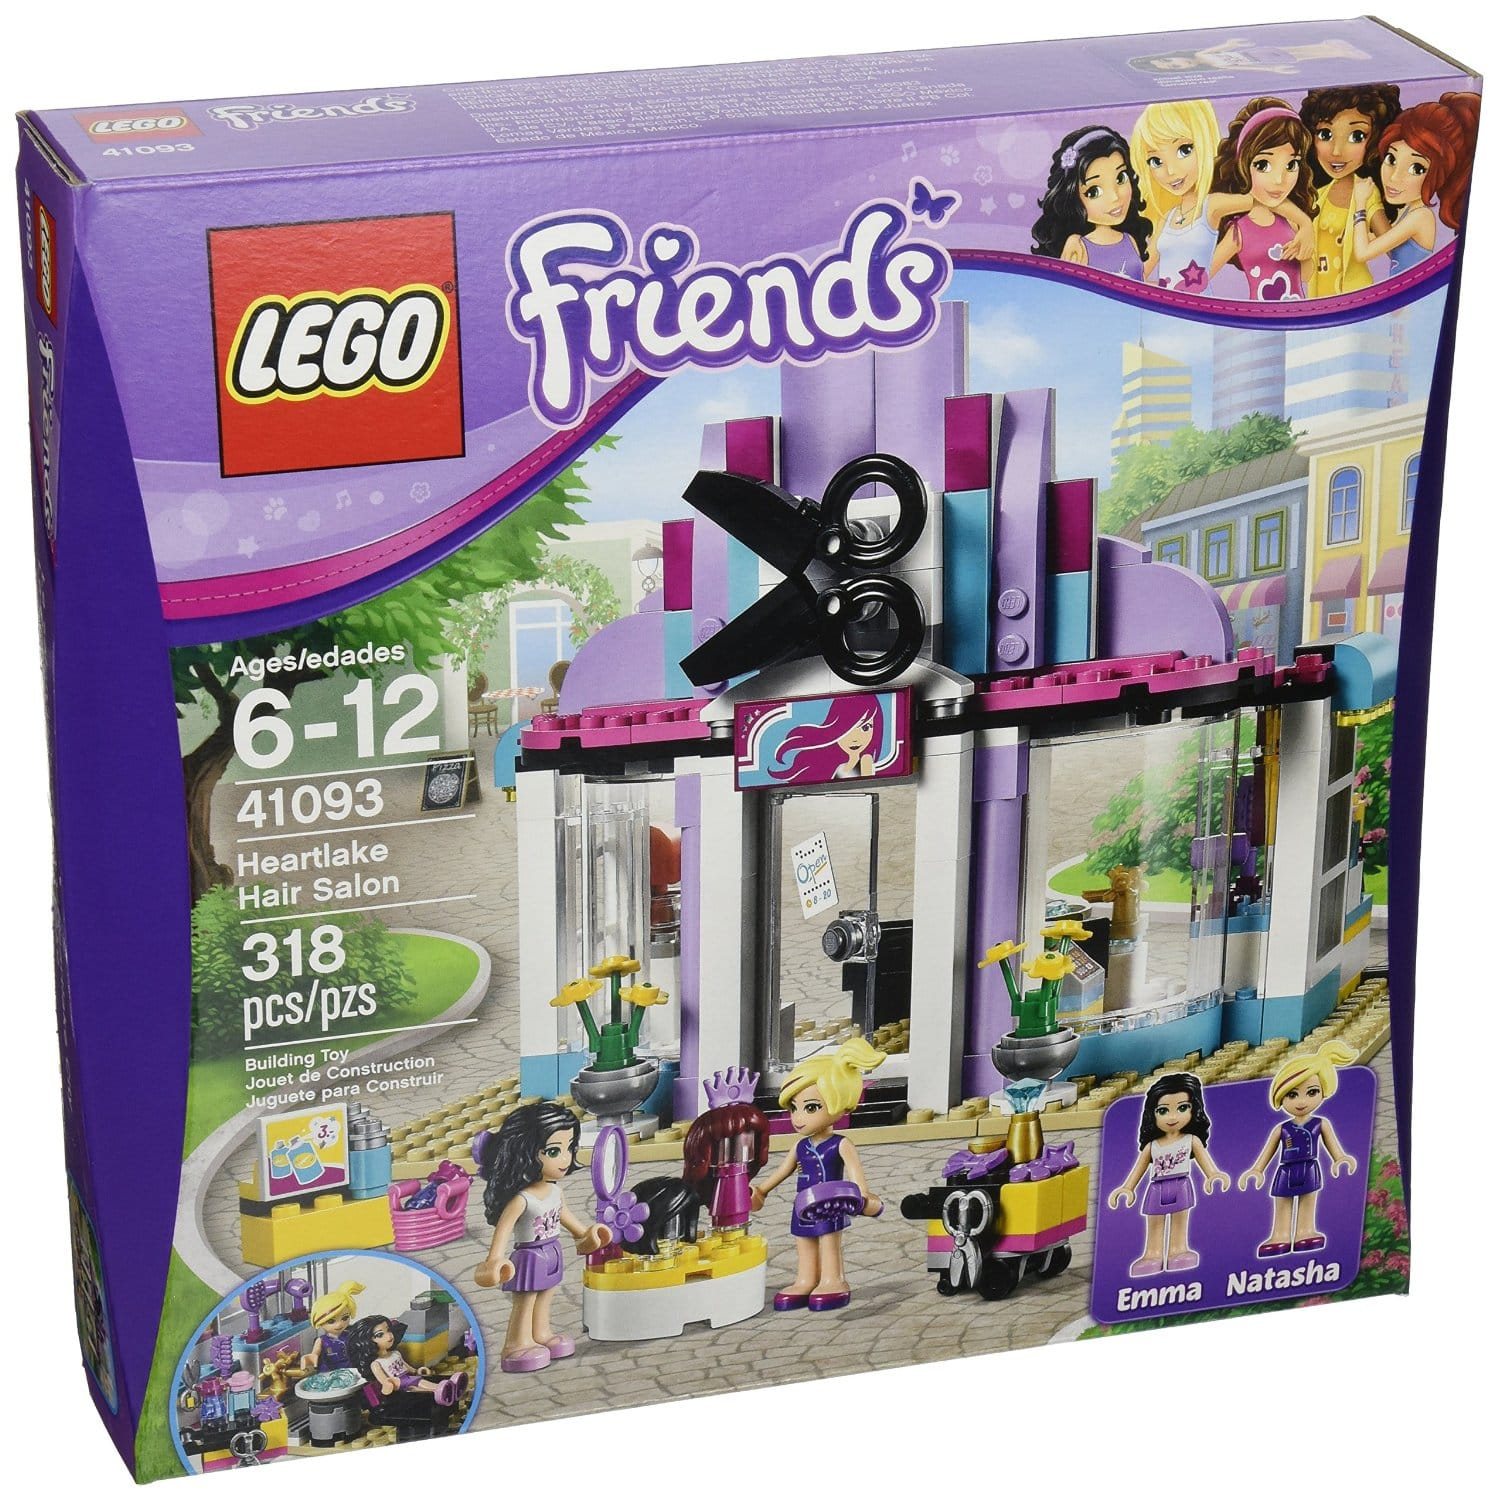 LEGO Friends Heartlake Hair Salon $17.59 at Amazon or Target *Back for a little less*